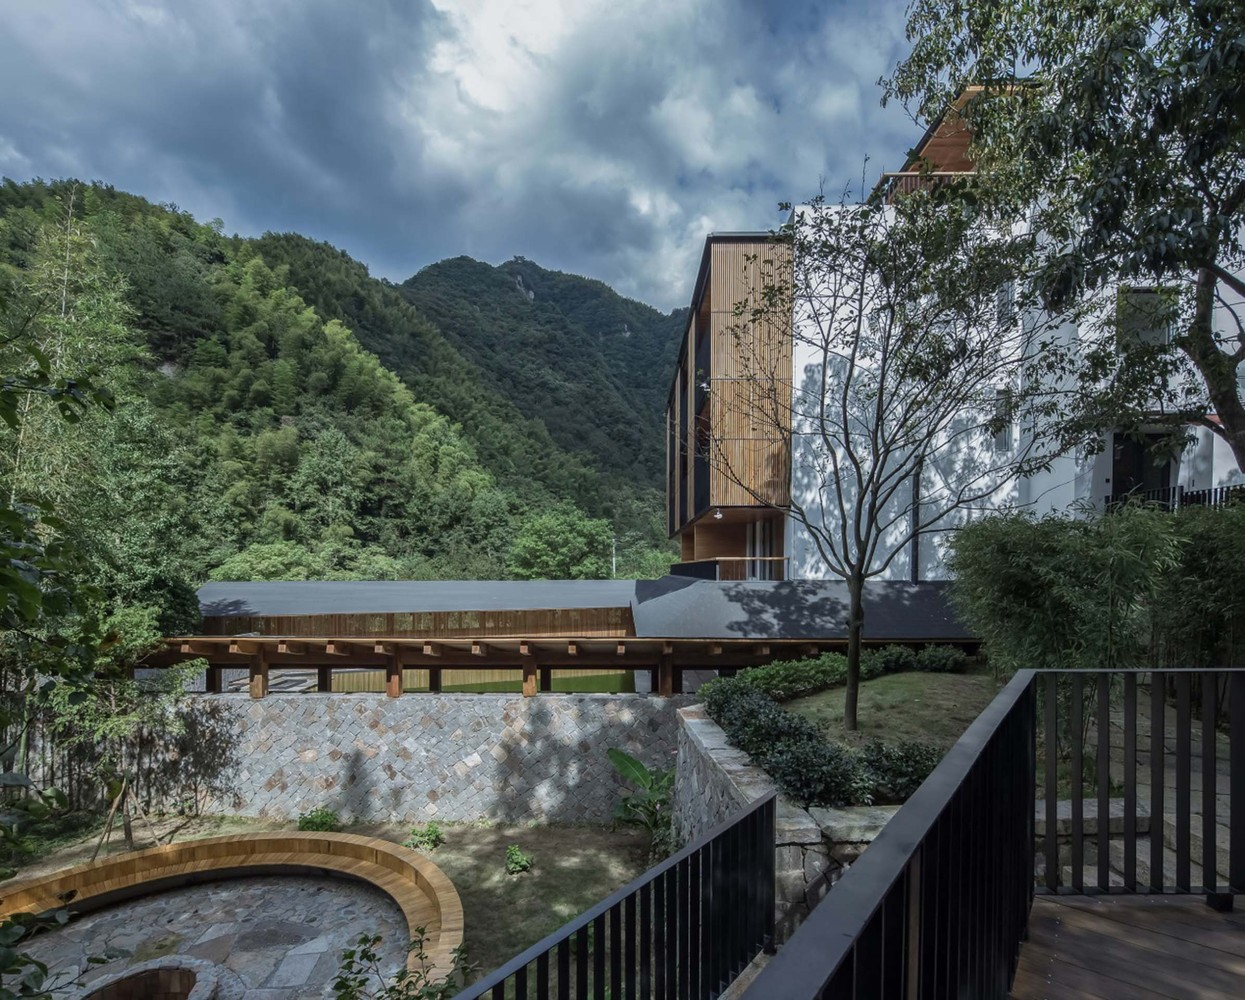 Yule Mountain Hotel, Taihuyuan, Hangzhou , China